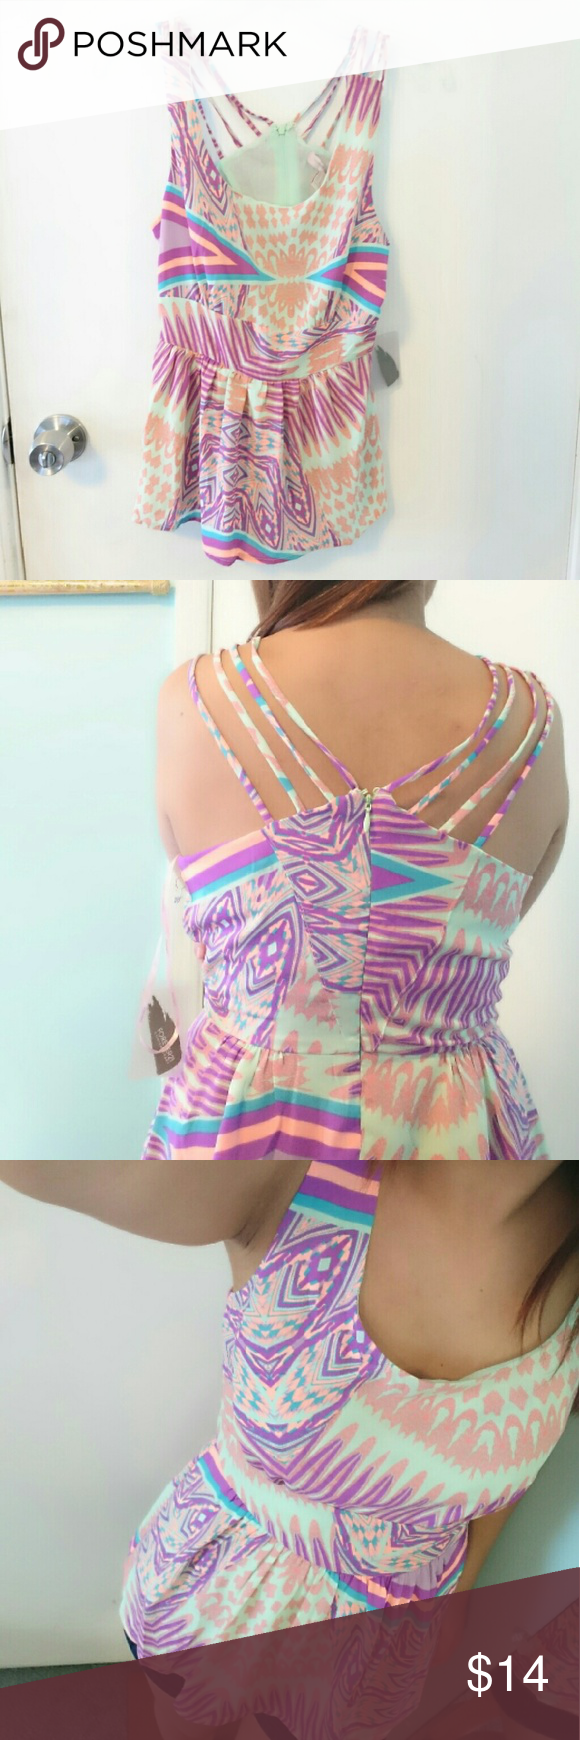 New Forever21 multi color top!!! Forever21 multi color top, Brand NEW with tag!   Love everything about this top from first time I saw it. The color and designed is so unique. Forever 21 Tops Blouses